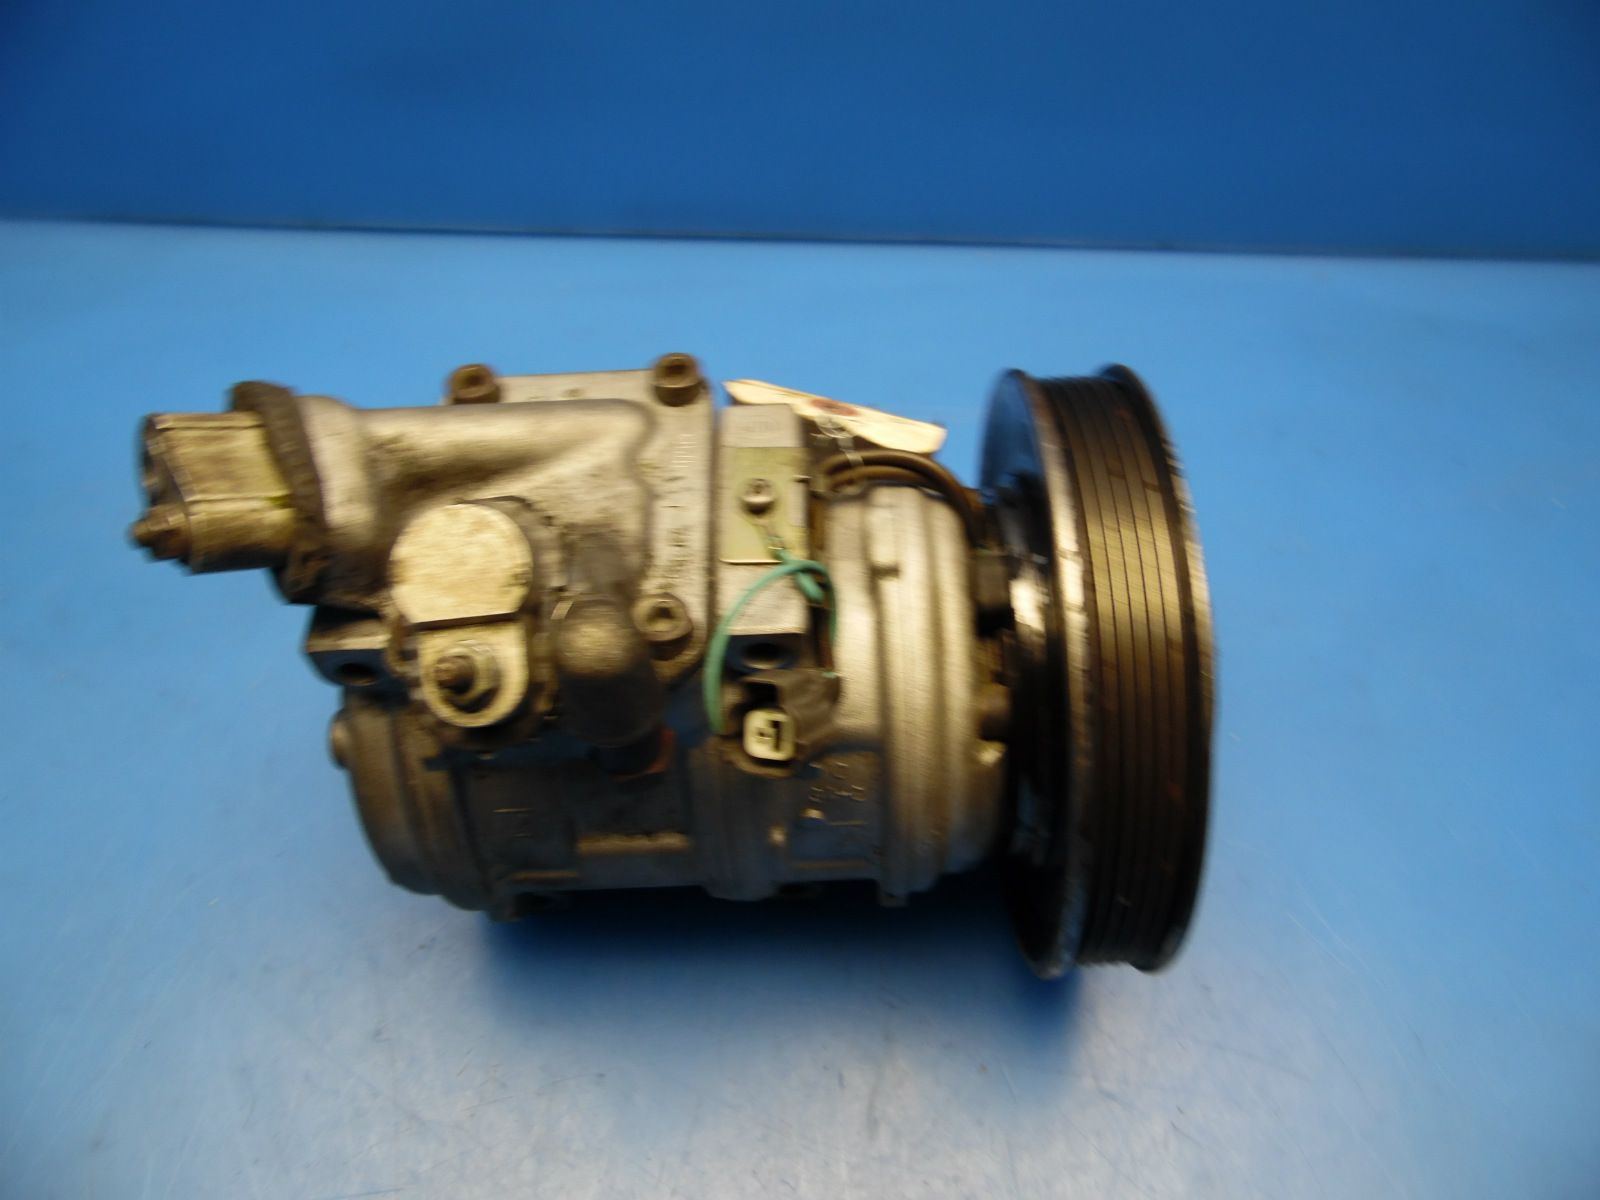 97 Acura CL OEM A/C ac compressor pump with clutch 2.2 Part # MC447200-4560